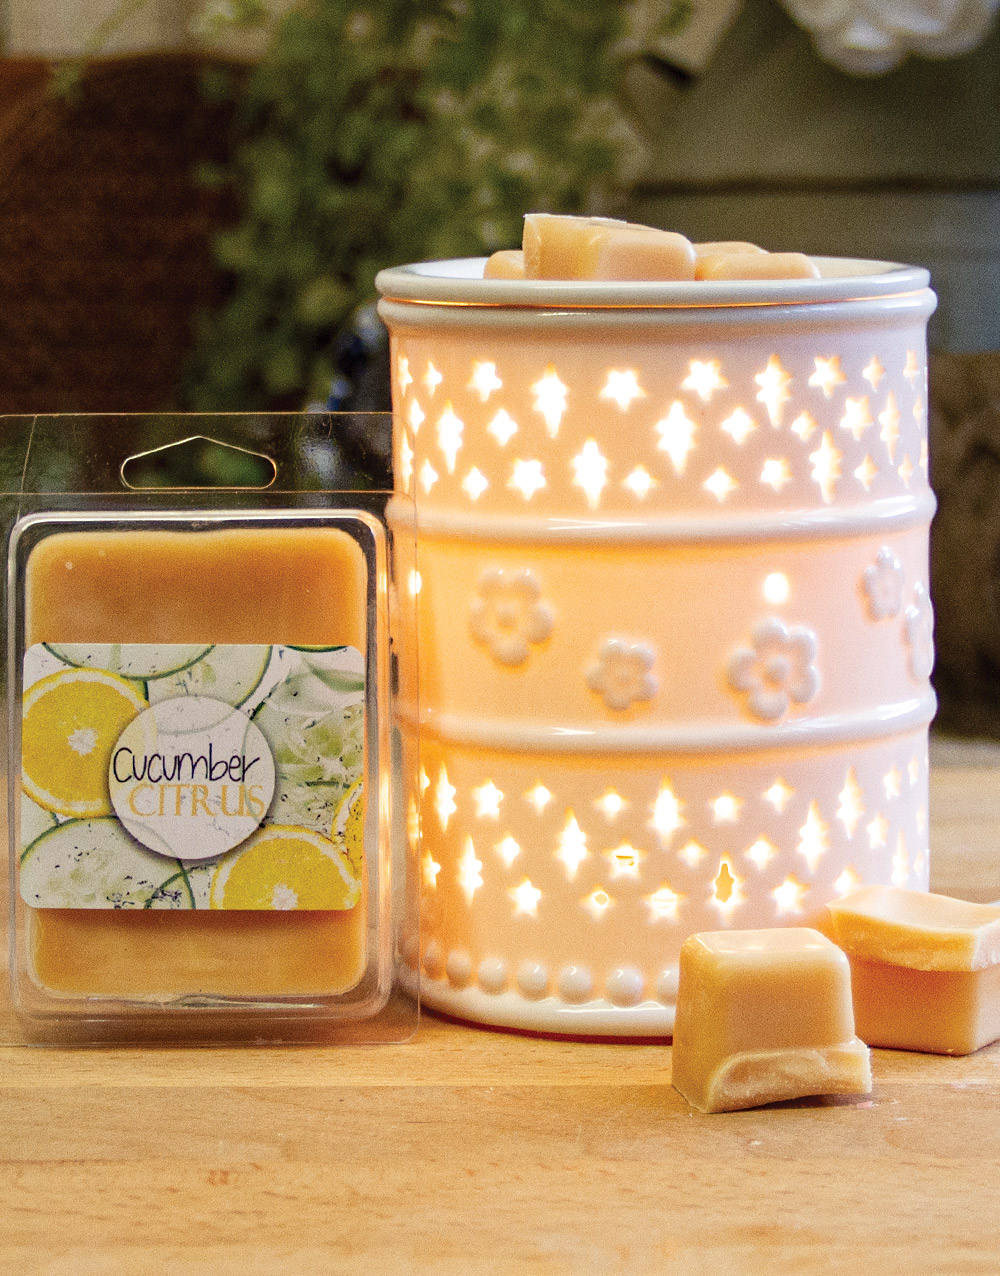 Aurora Scented Melts – Cucumber Citrus